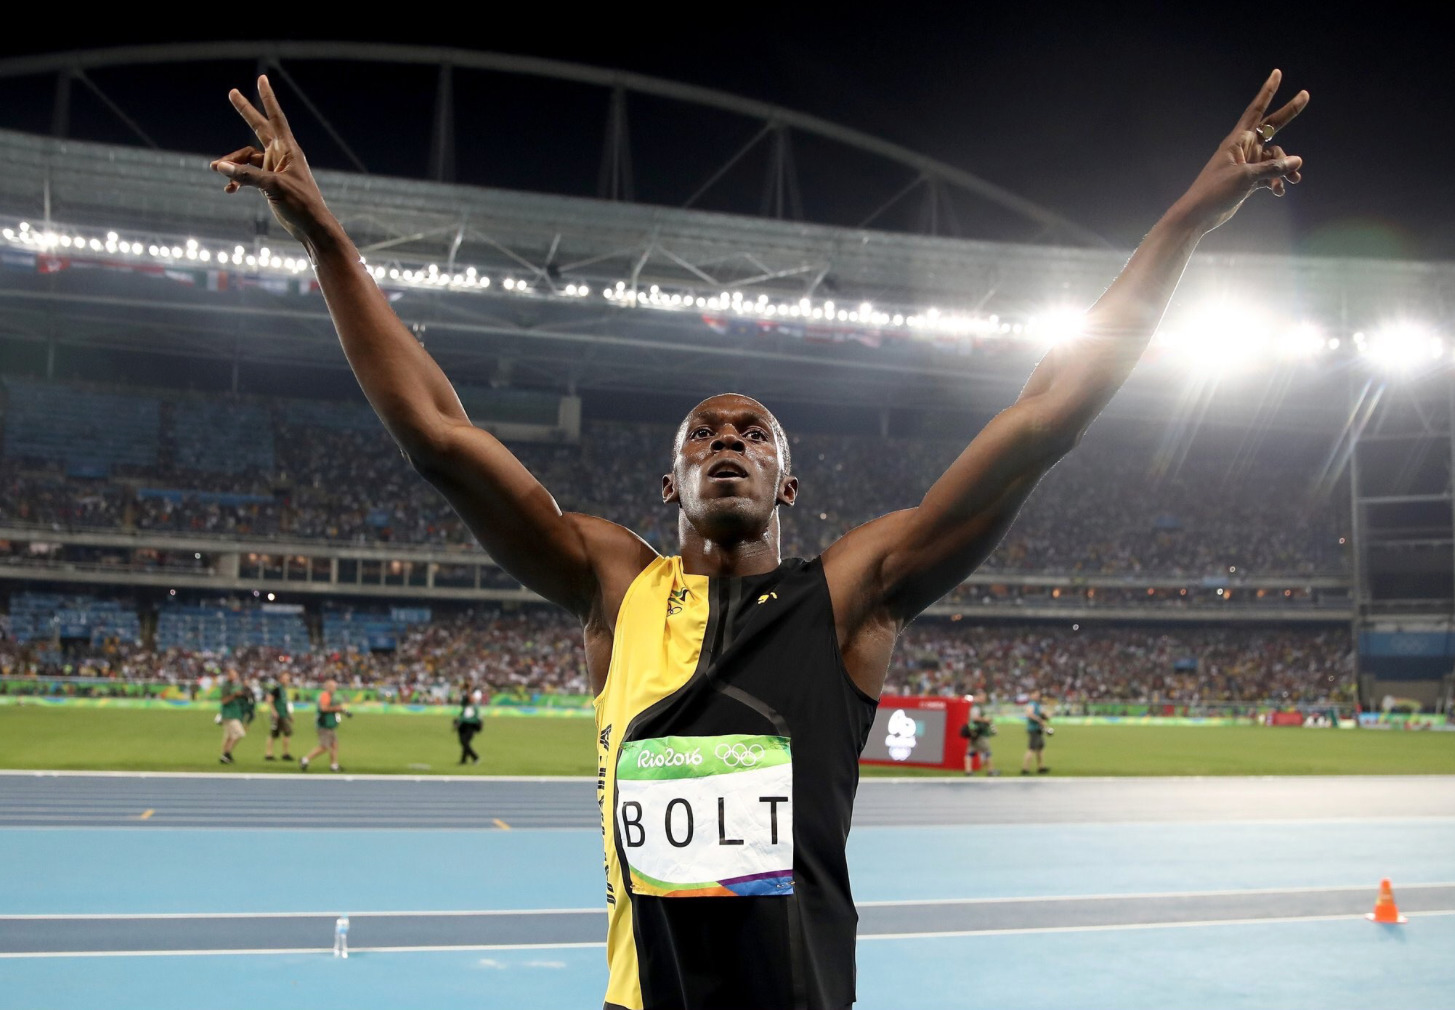 Usain-Bolt-Final-200m-Rio-2016-2